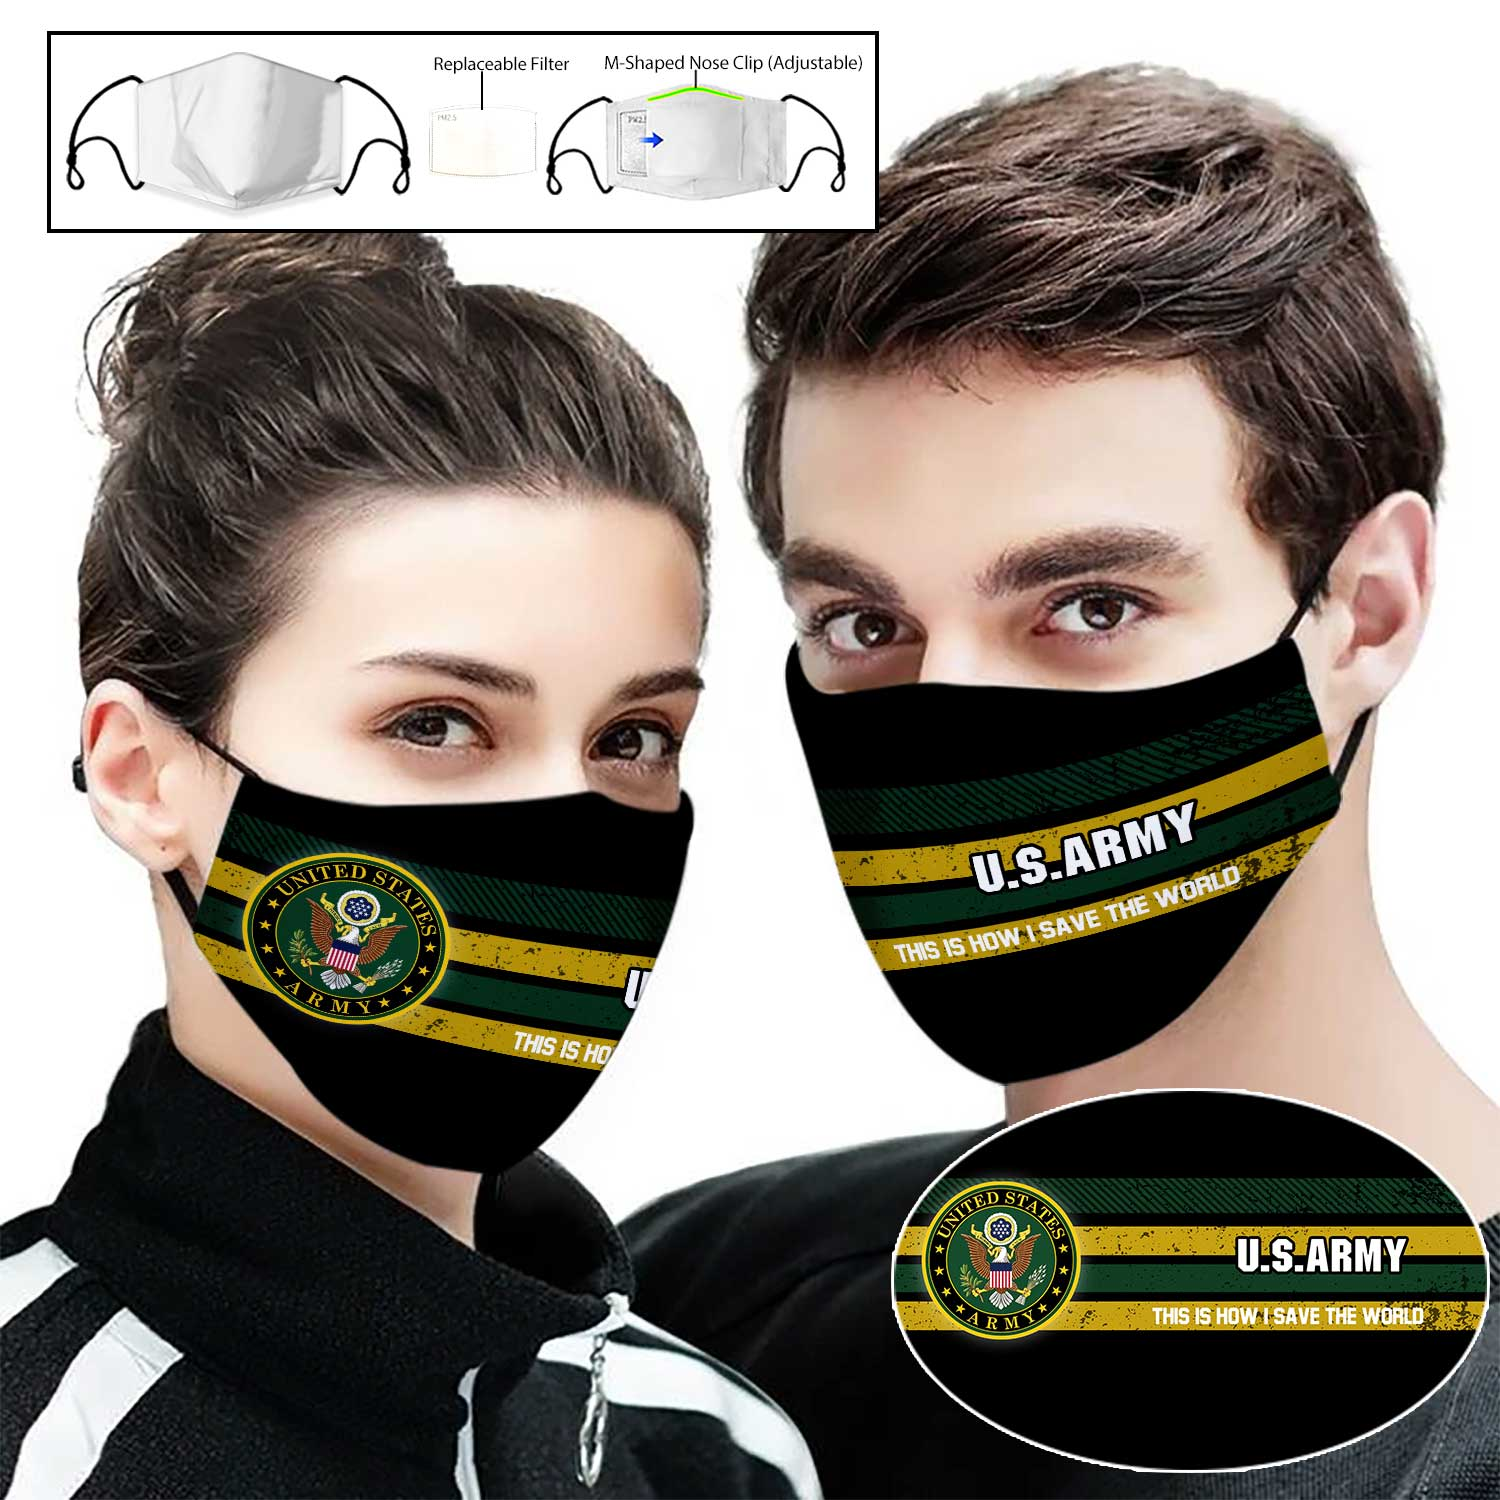 US army this is how i save the world full printing face mask 2